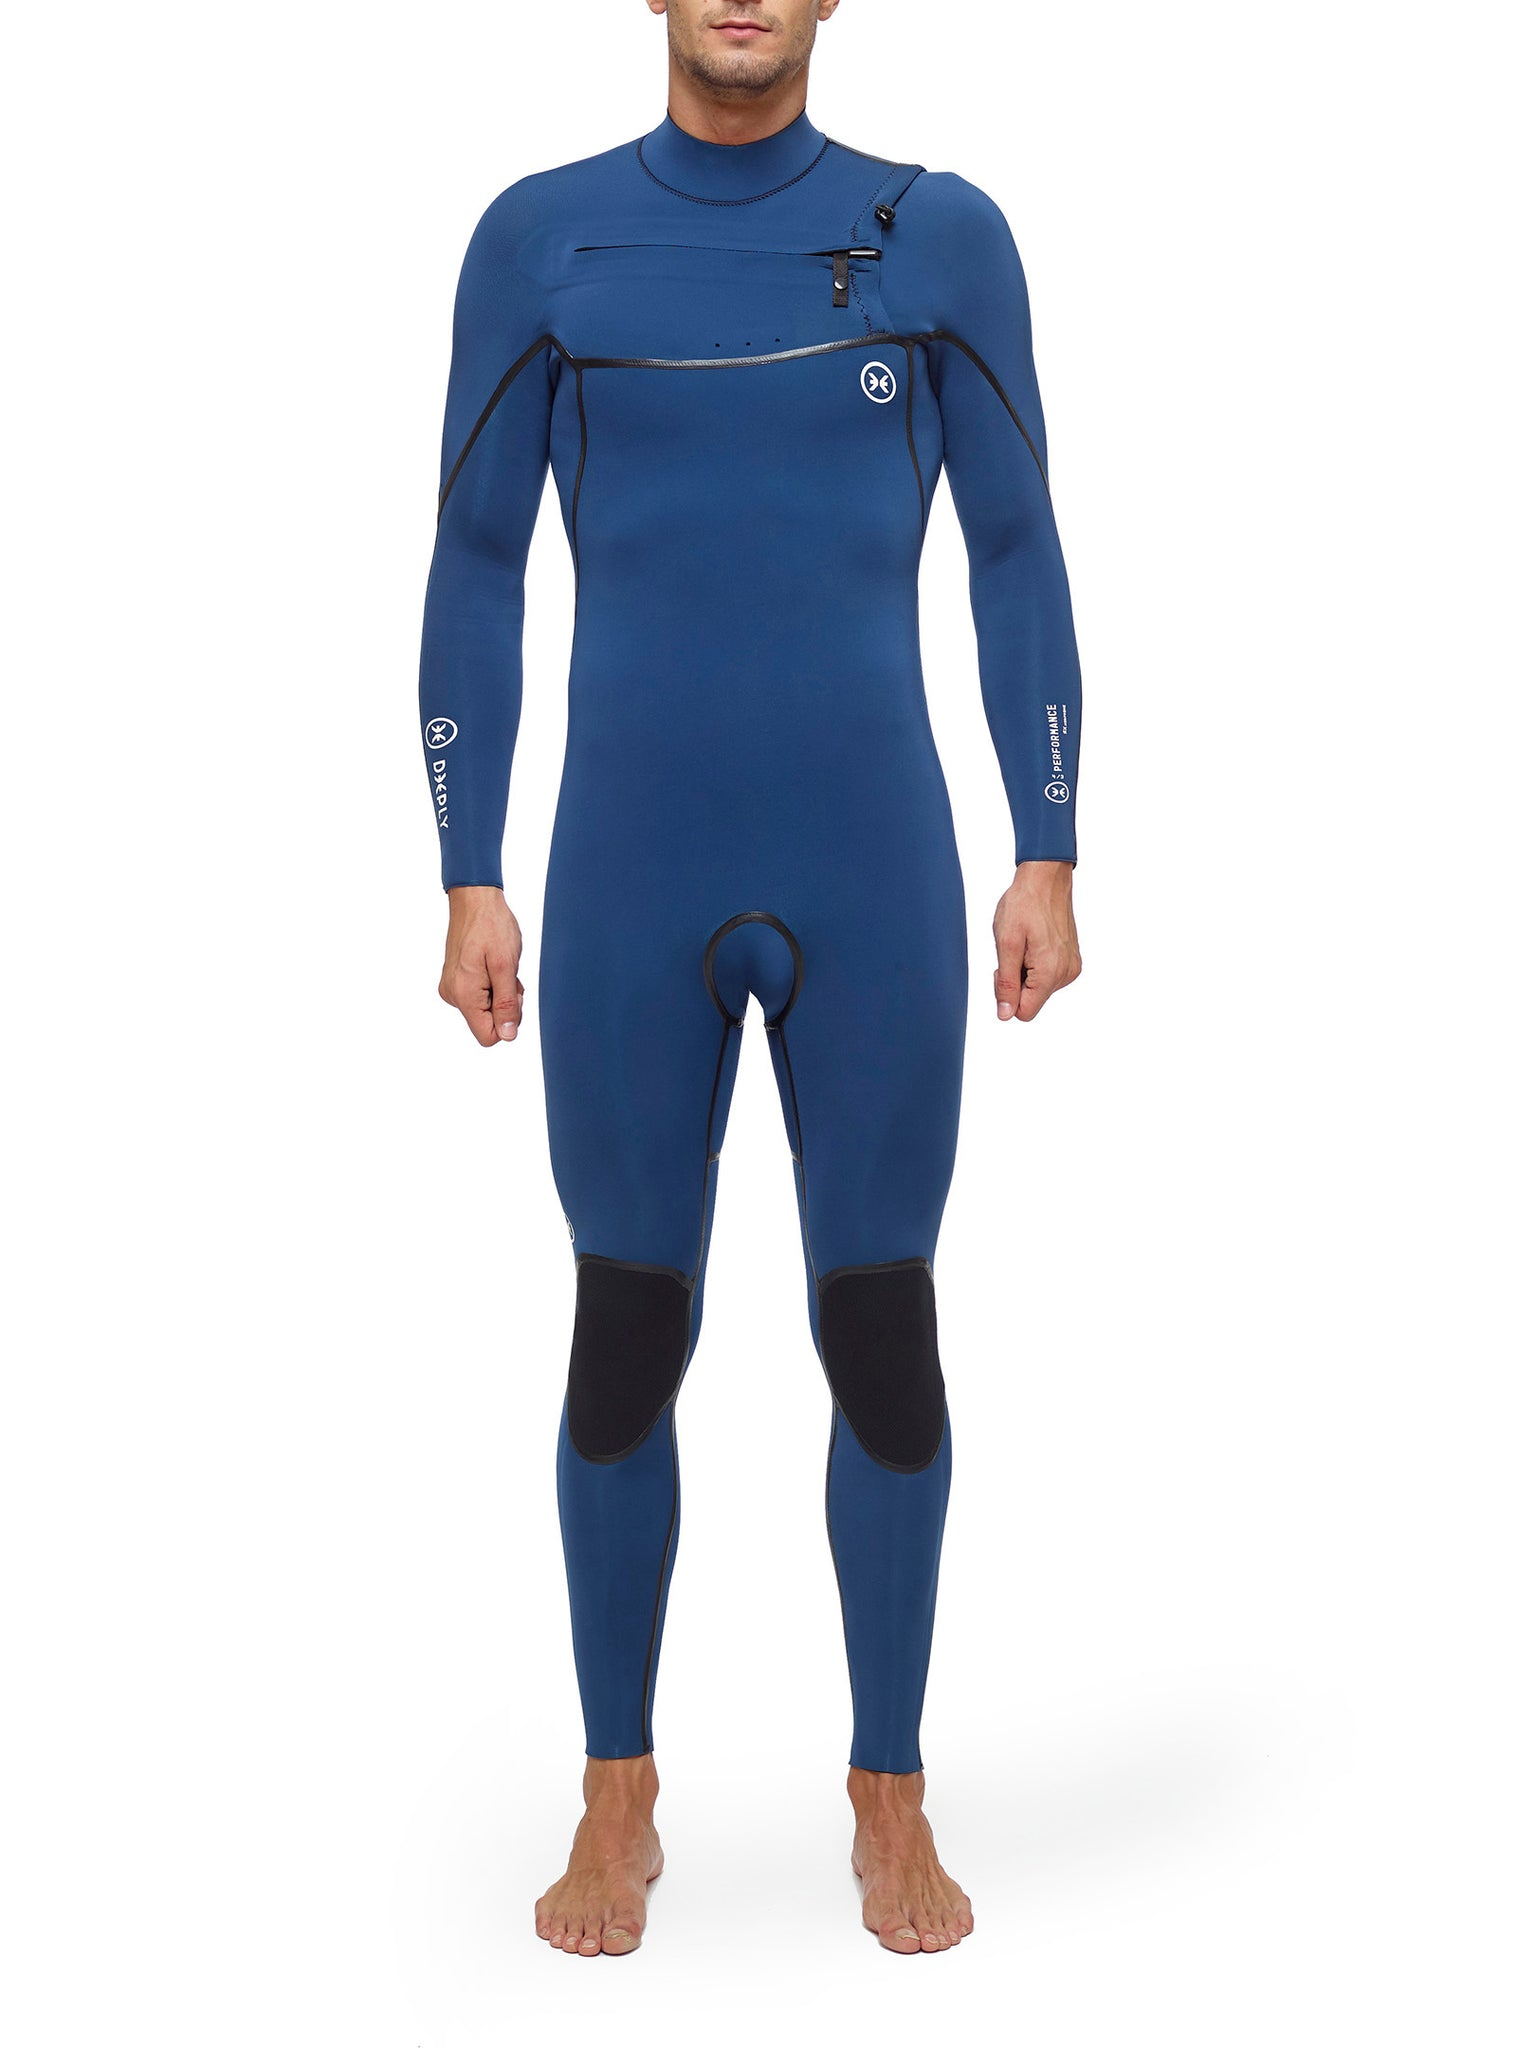 Wetsuit Man Performance 4/3 Chest Zip Dark Blue